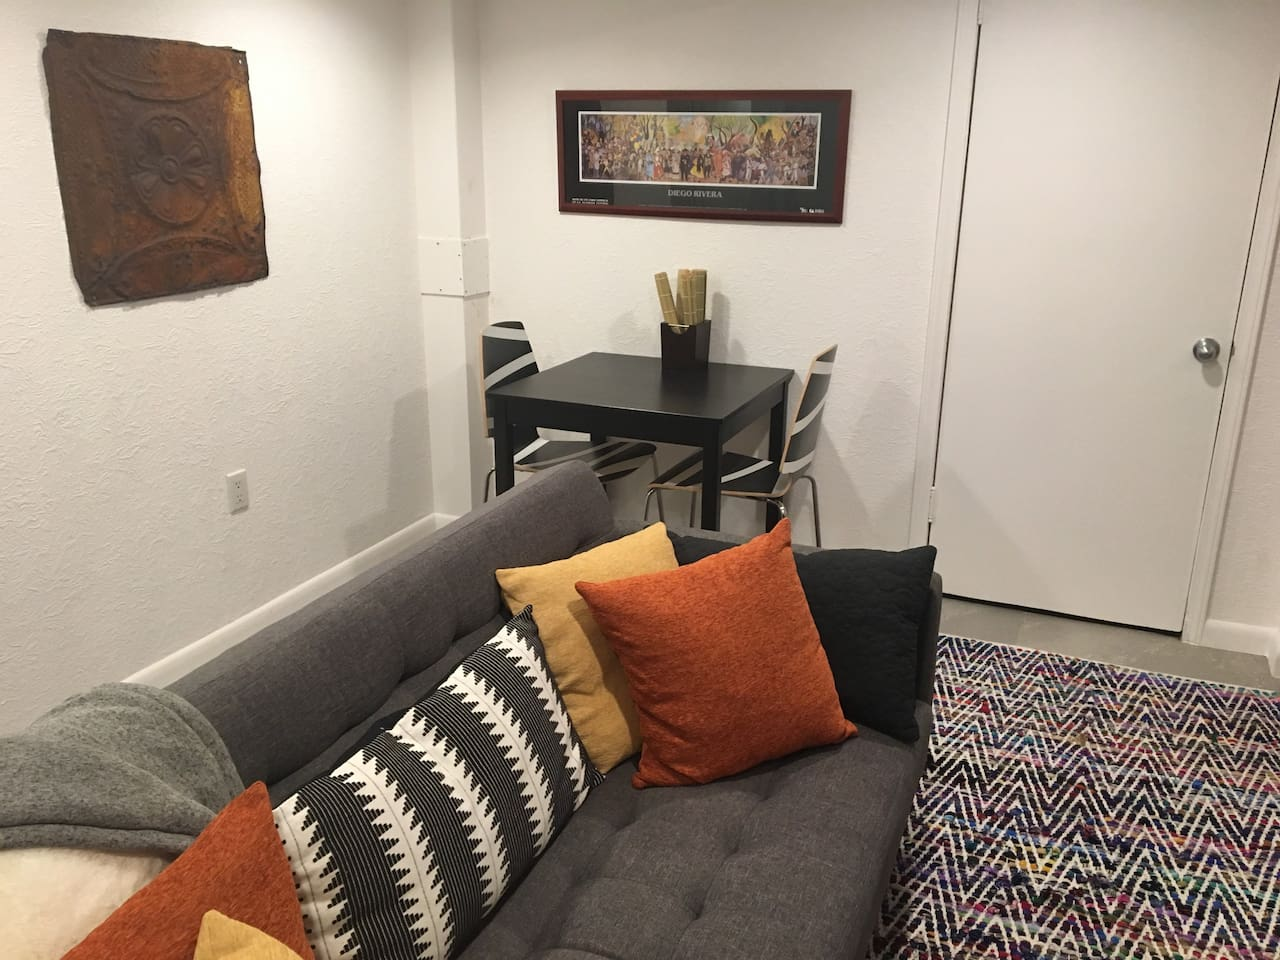 Living room - work/dinette table and chairs